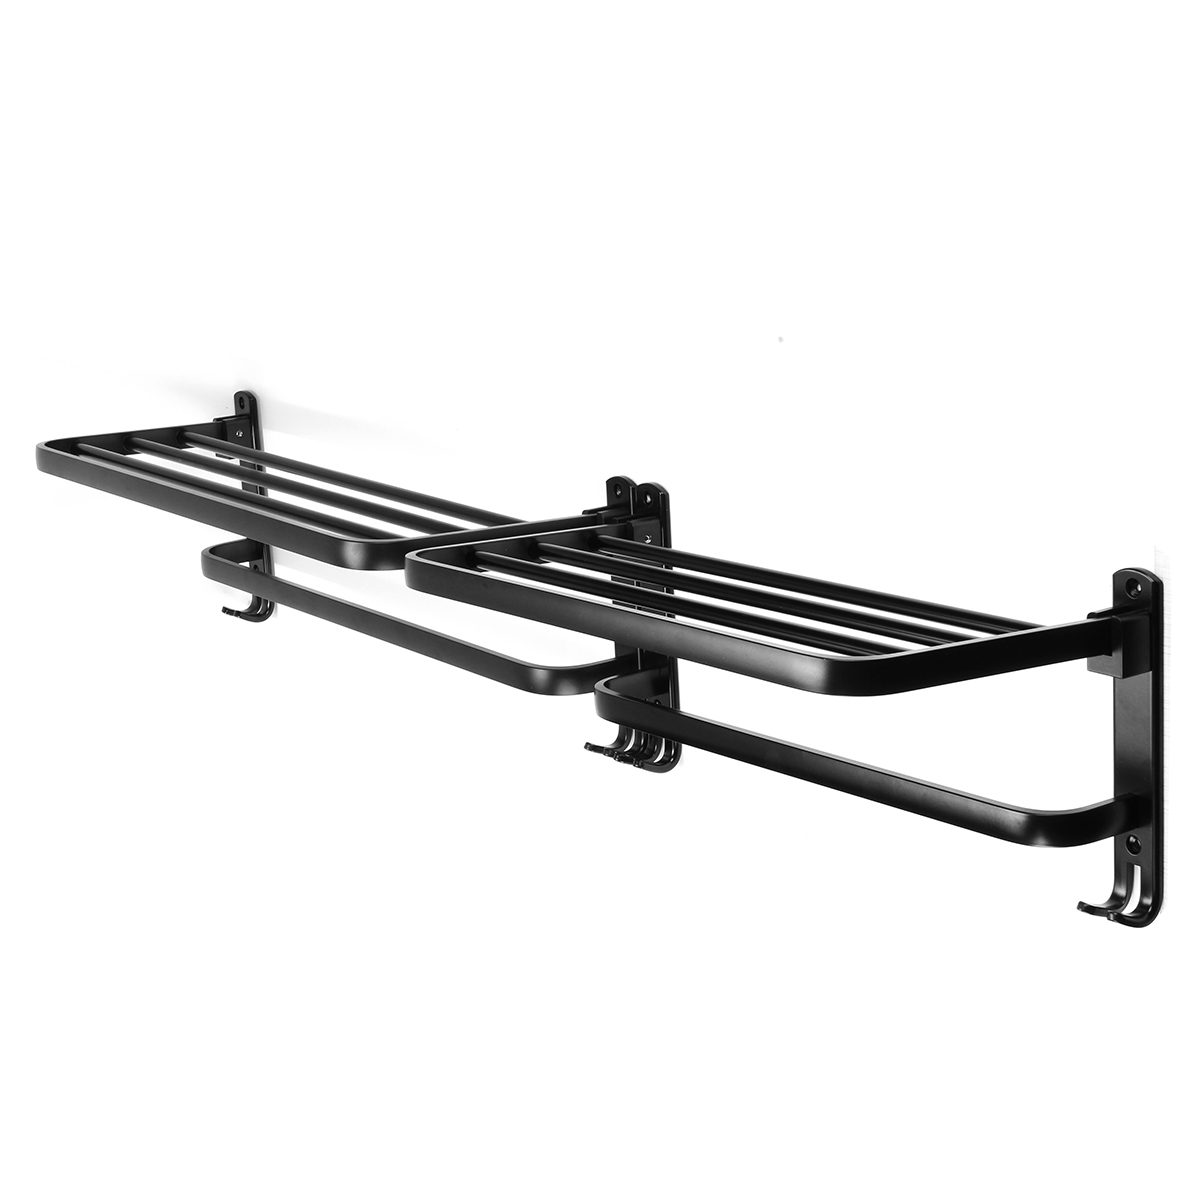 Foldable Vintage Towel Rack Black Brief Aluminum Towel Folding Towel Holder Double Bath Shelves Towel Rail Bathroom Fixed Accessories